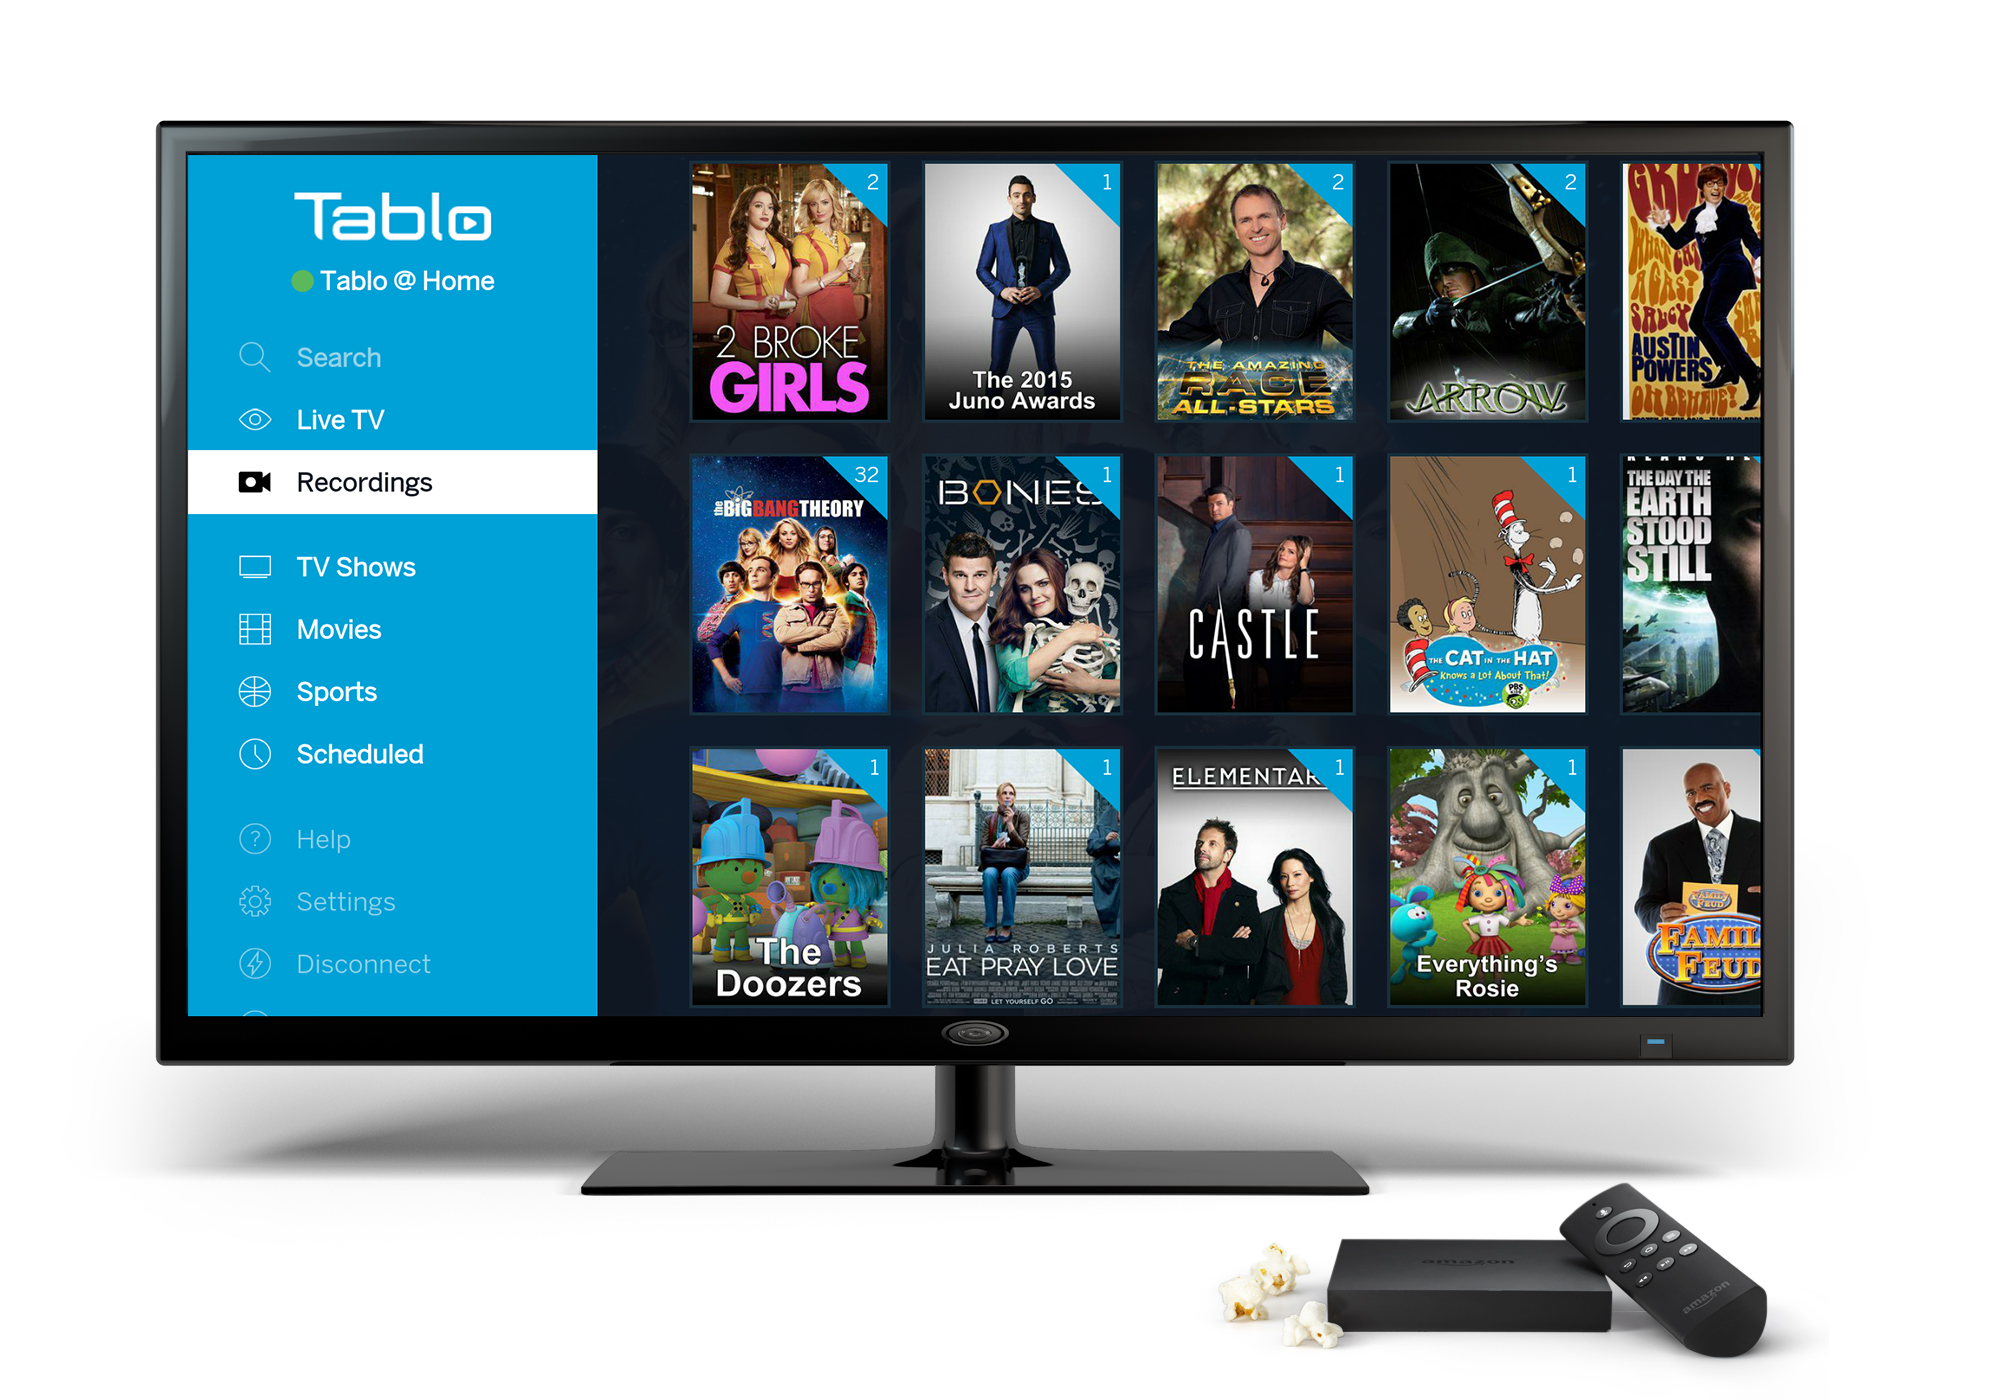 Discover Live Tv And Dvr Shows On Your Amazon Fire Tv Over The Air